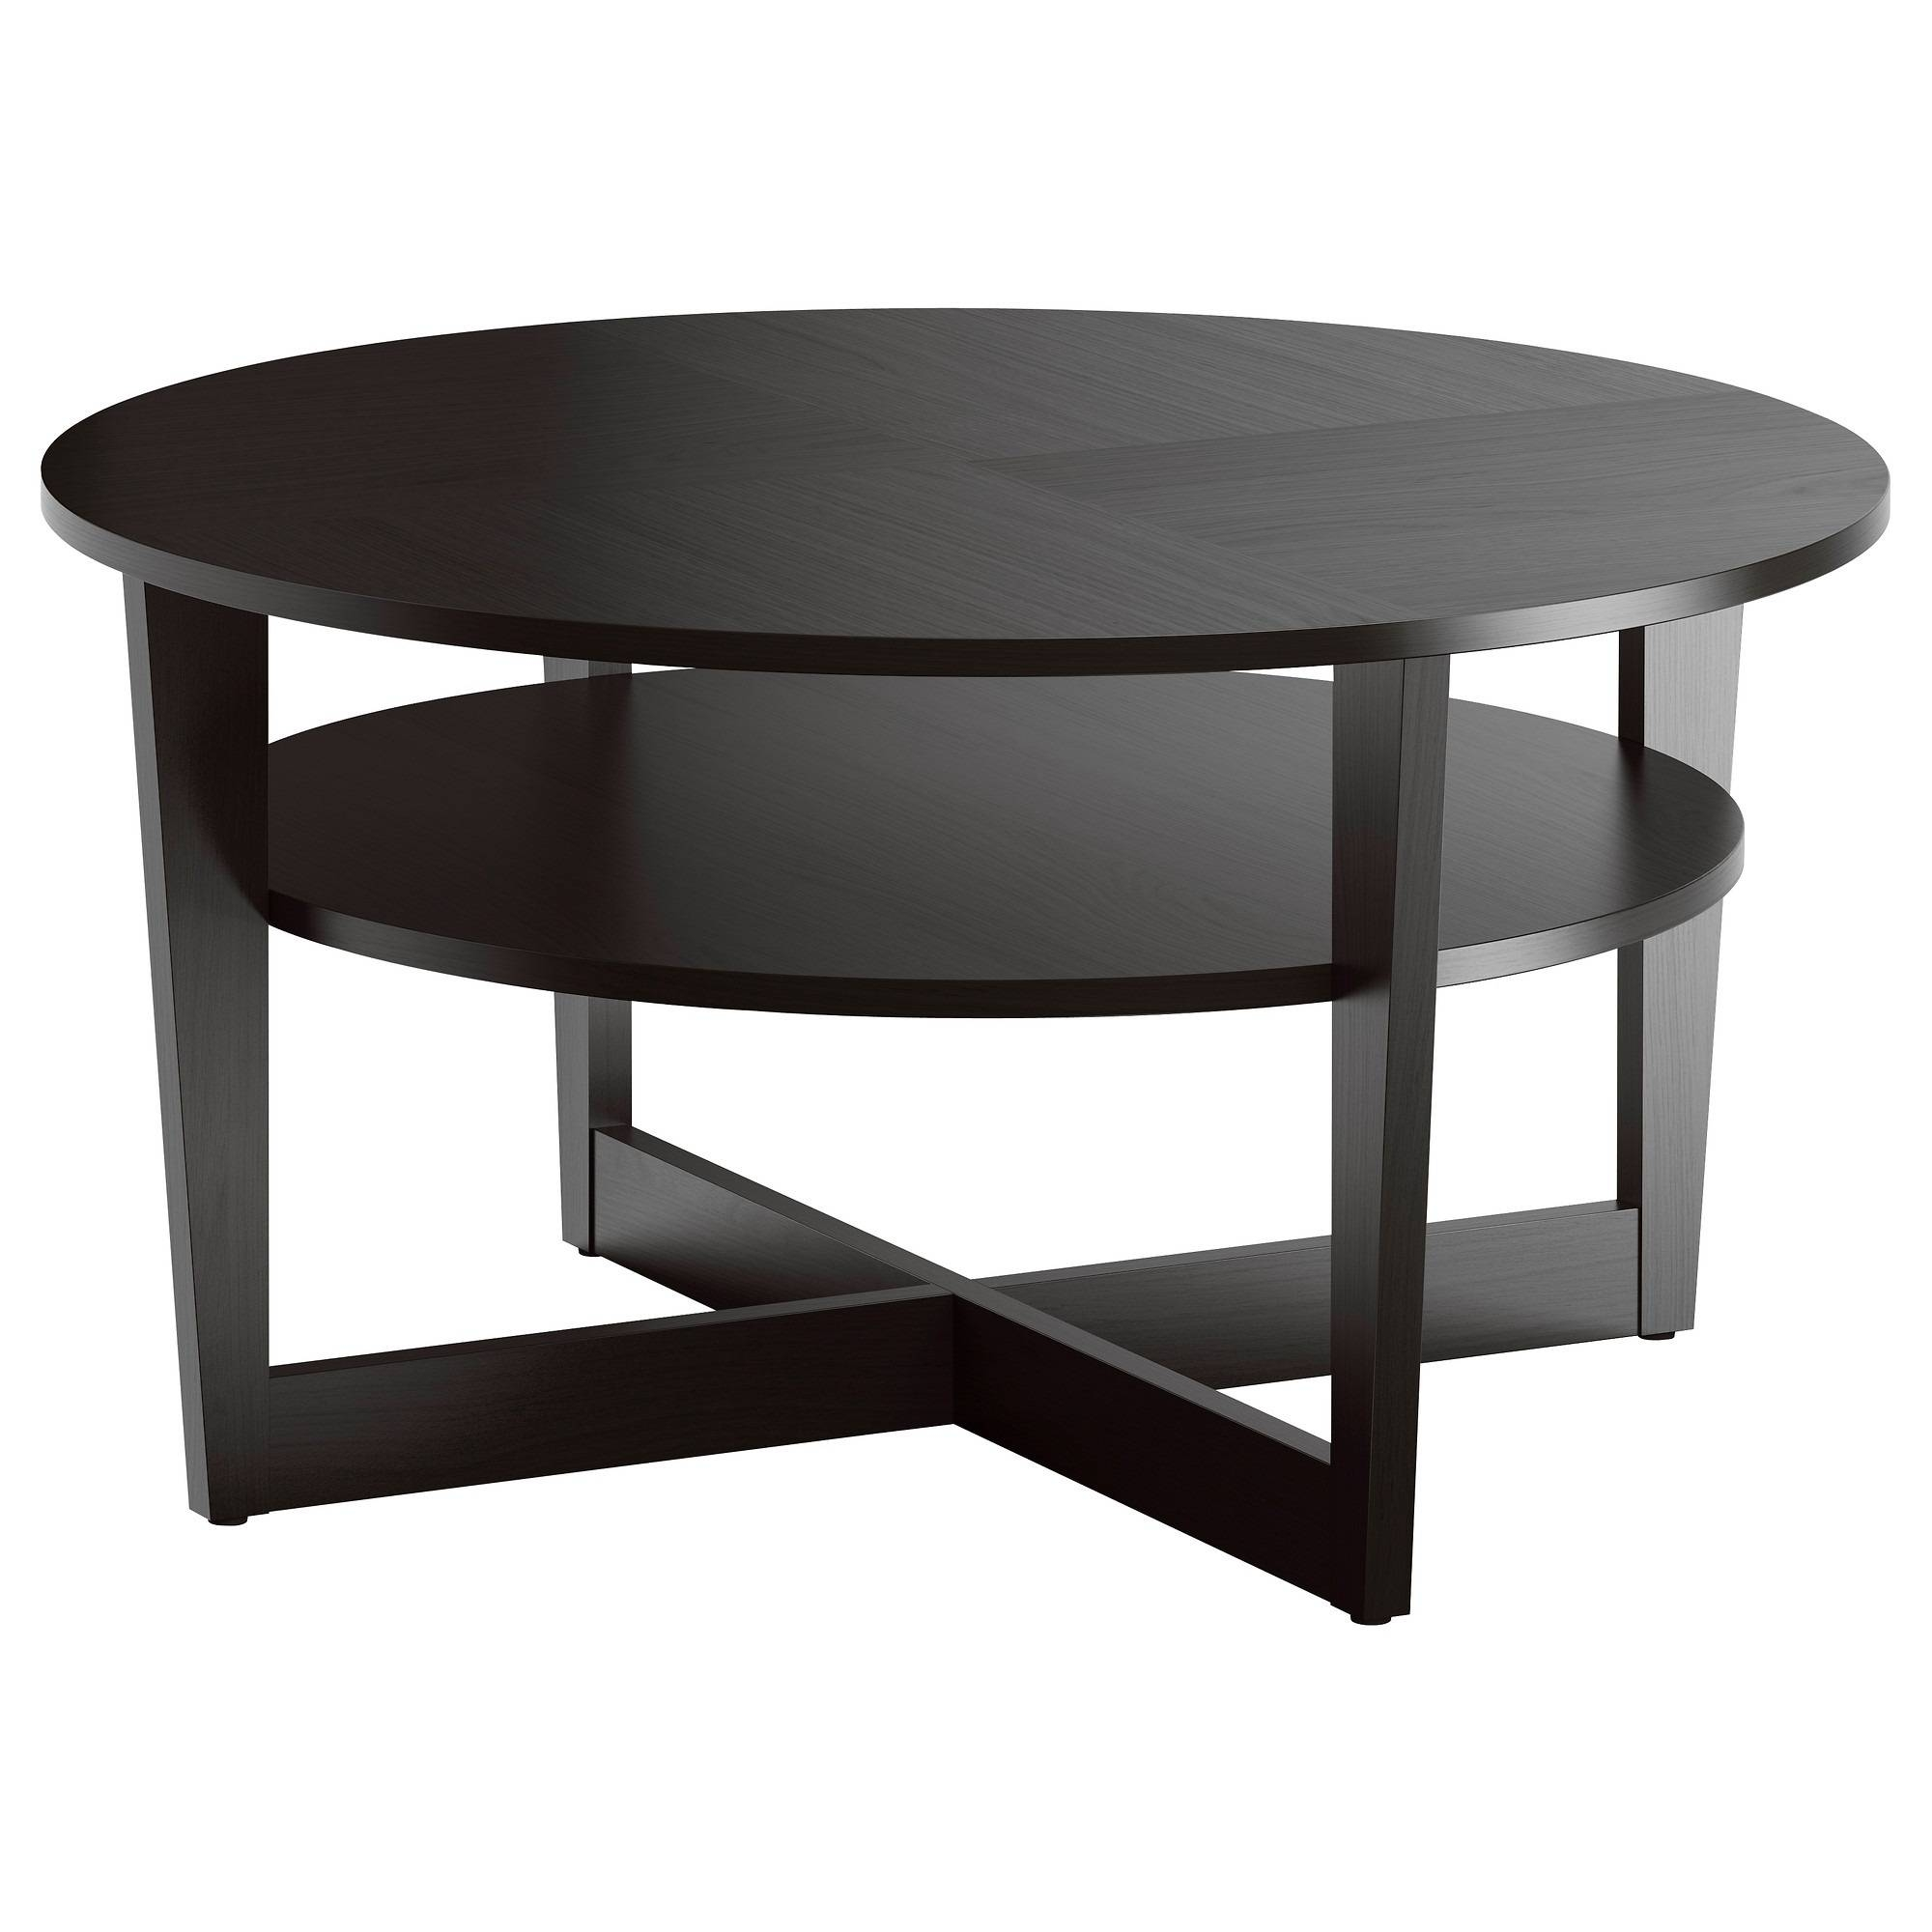 Black Circle Coffee Table. Round Coffee Table. Table Circle Coffee with regard to Circle Coffee Tables (Image 3 of 30)